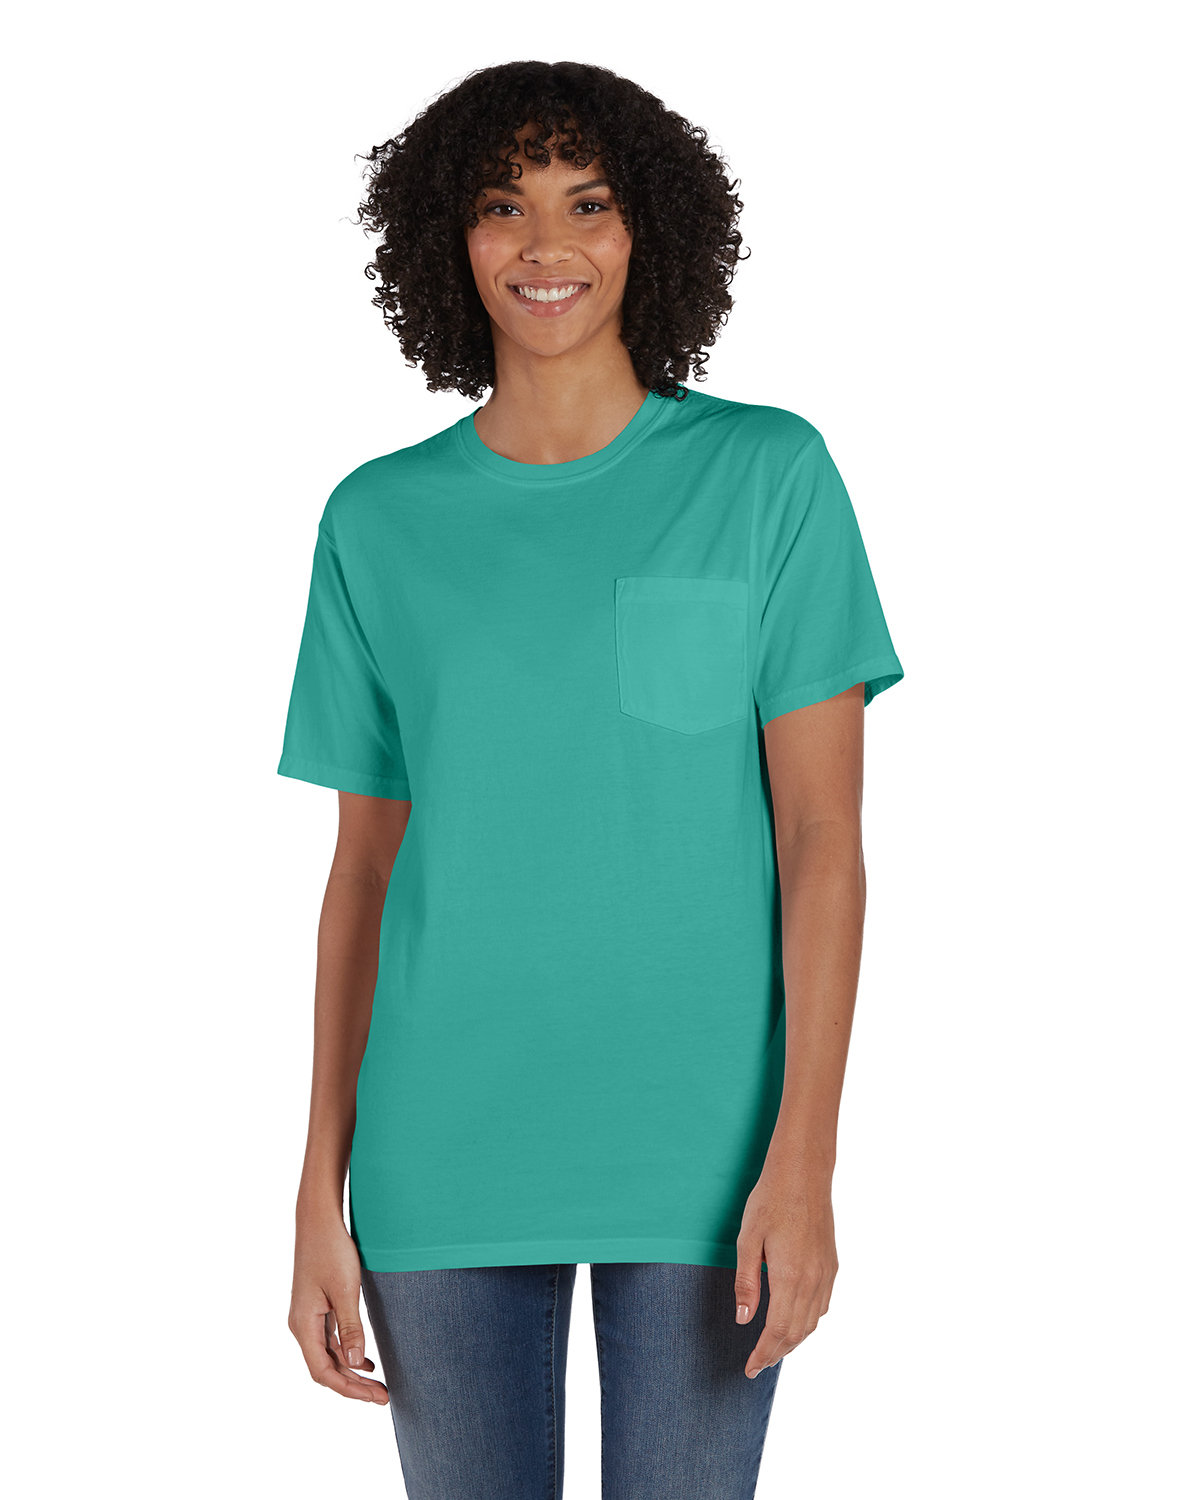 ComfortWash by Hanes Unisex 5.5 oz., 100% Ringspun Cotton Garment-Dyed T-Shirt with Pocket SPANISH MOSS